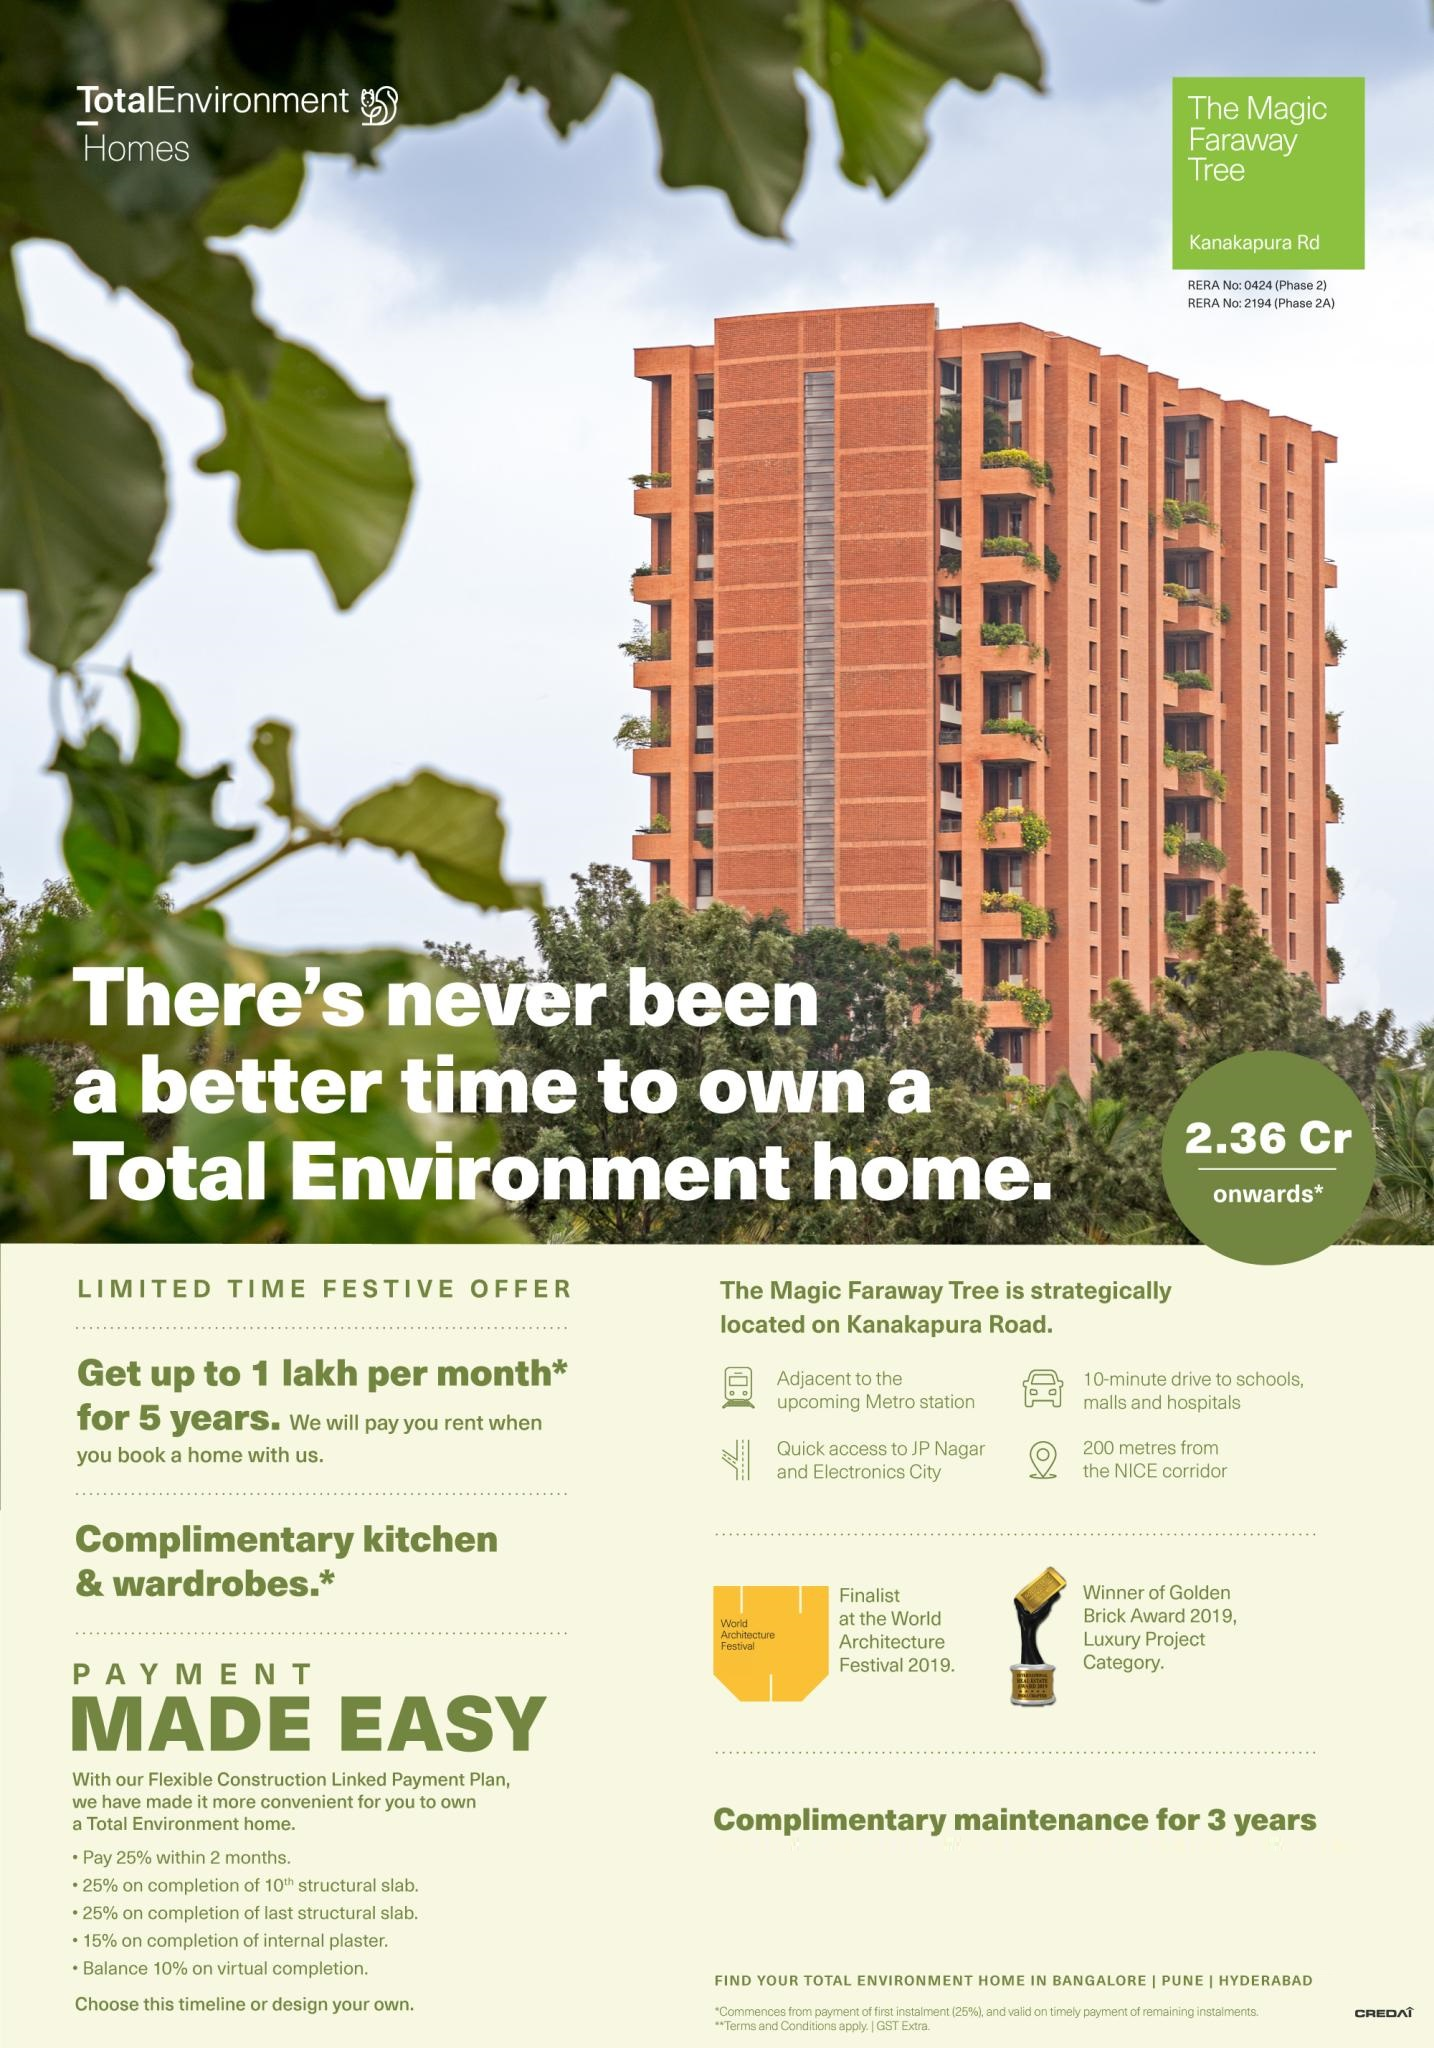 Total Environment The Magic Faraway Tree Winner of Golden Brick Award 2019 Luxury Project Category Bangalore